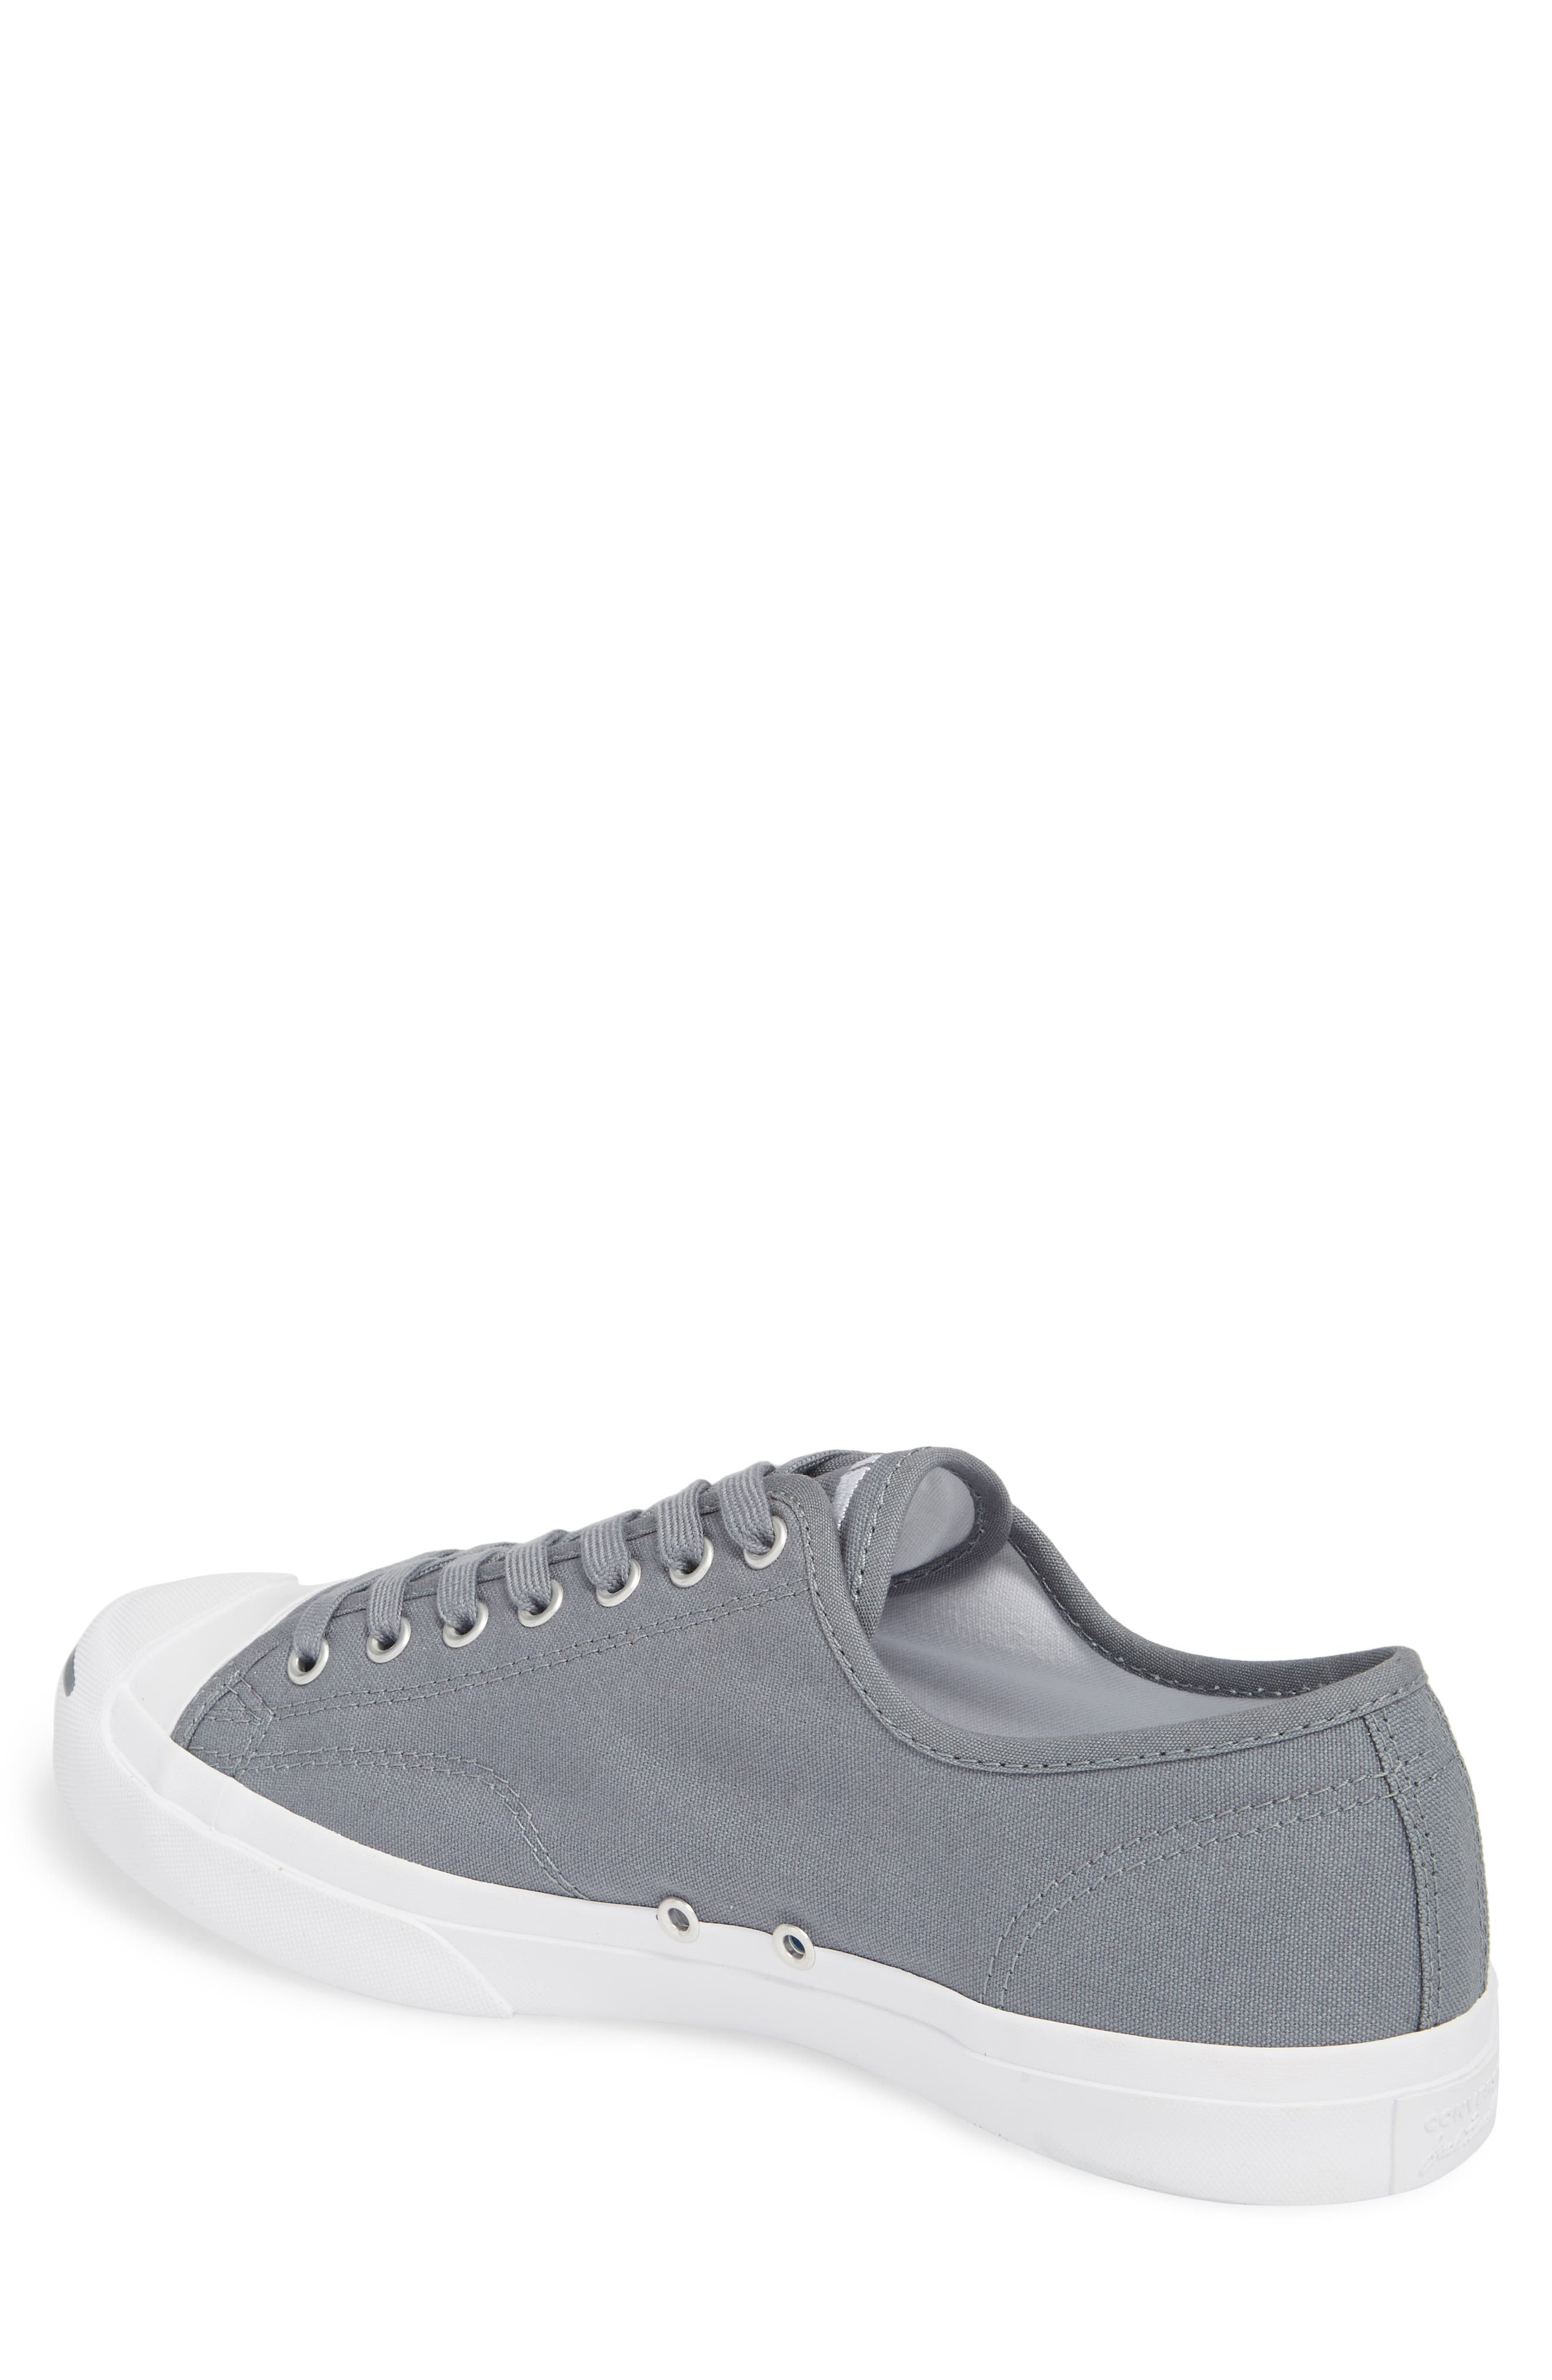 'Jack Purcell' Sneaker,                             Alternate thumbnail 2, color,                             Cool Grey Canvas